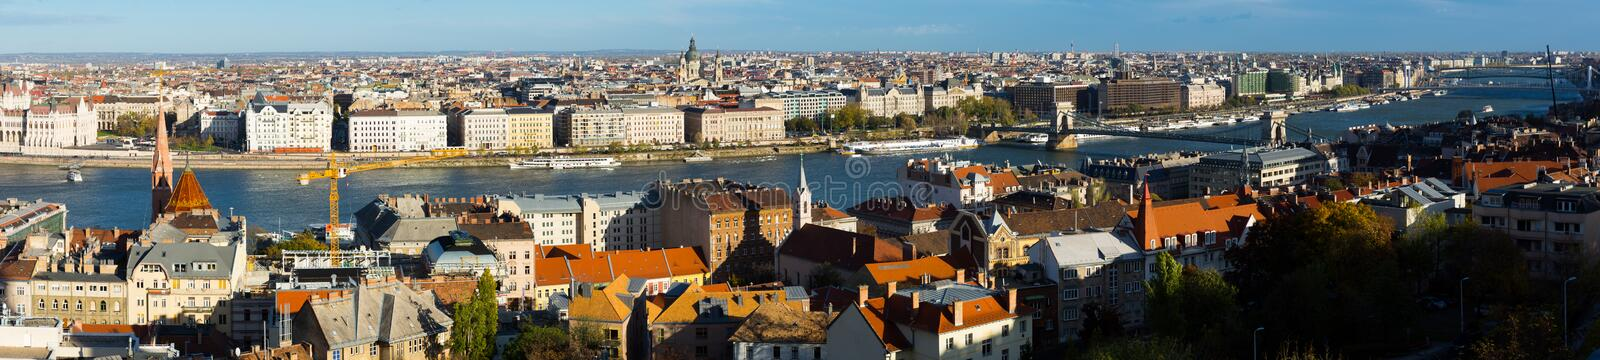 Old town Budapest with historical buildings and  Danube. Image of old town Budapest with historical buildings near  Danube river stock image